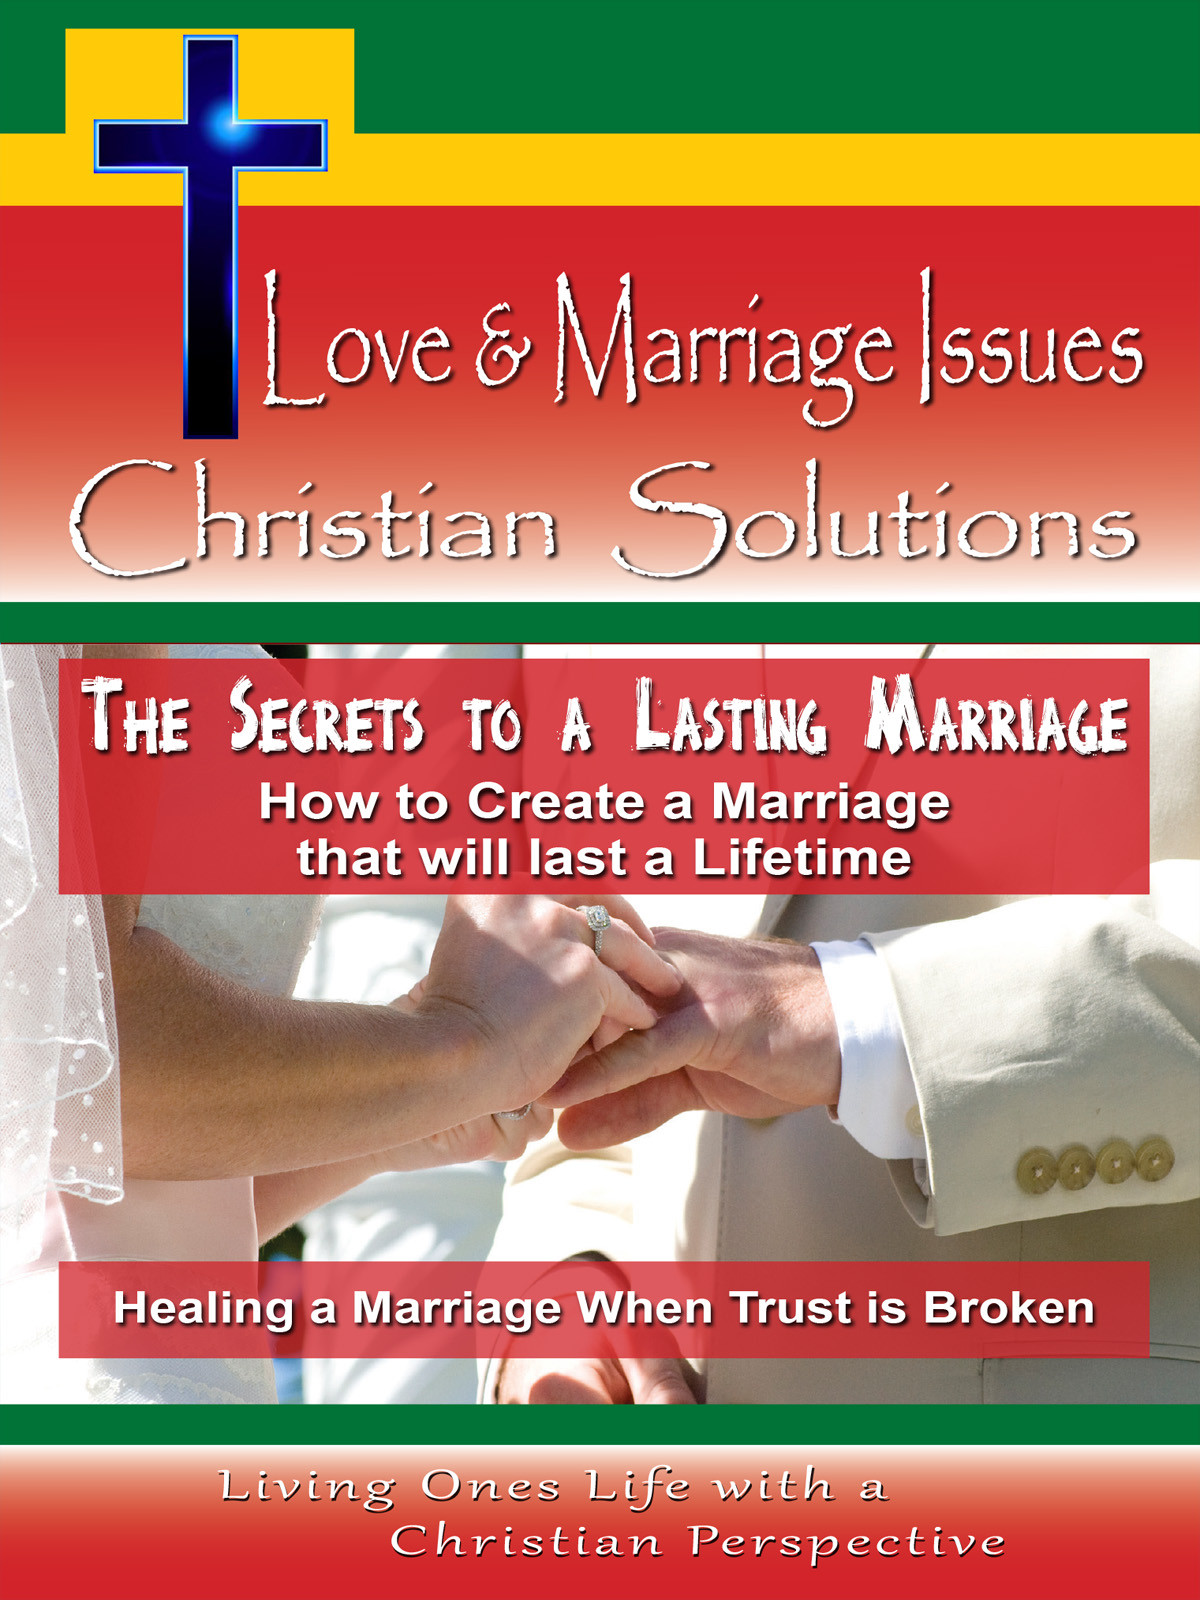 CH10044 - The Secrets to a Lasting Marriage How to Create a Marriage that will last a Lifetime